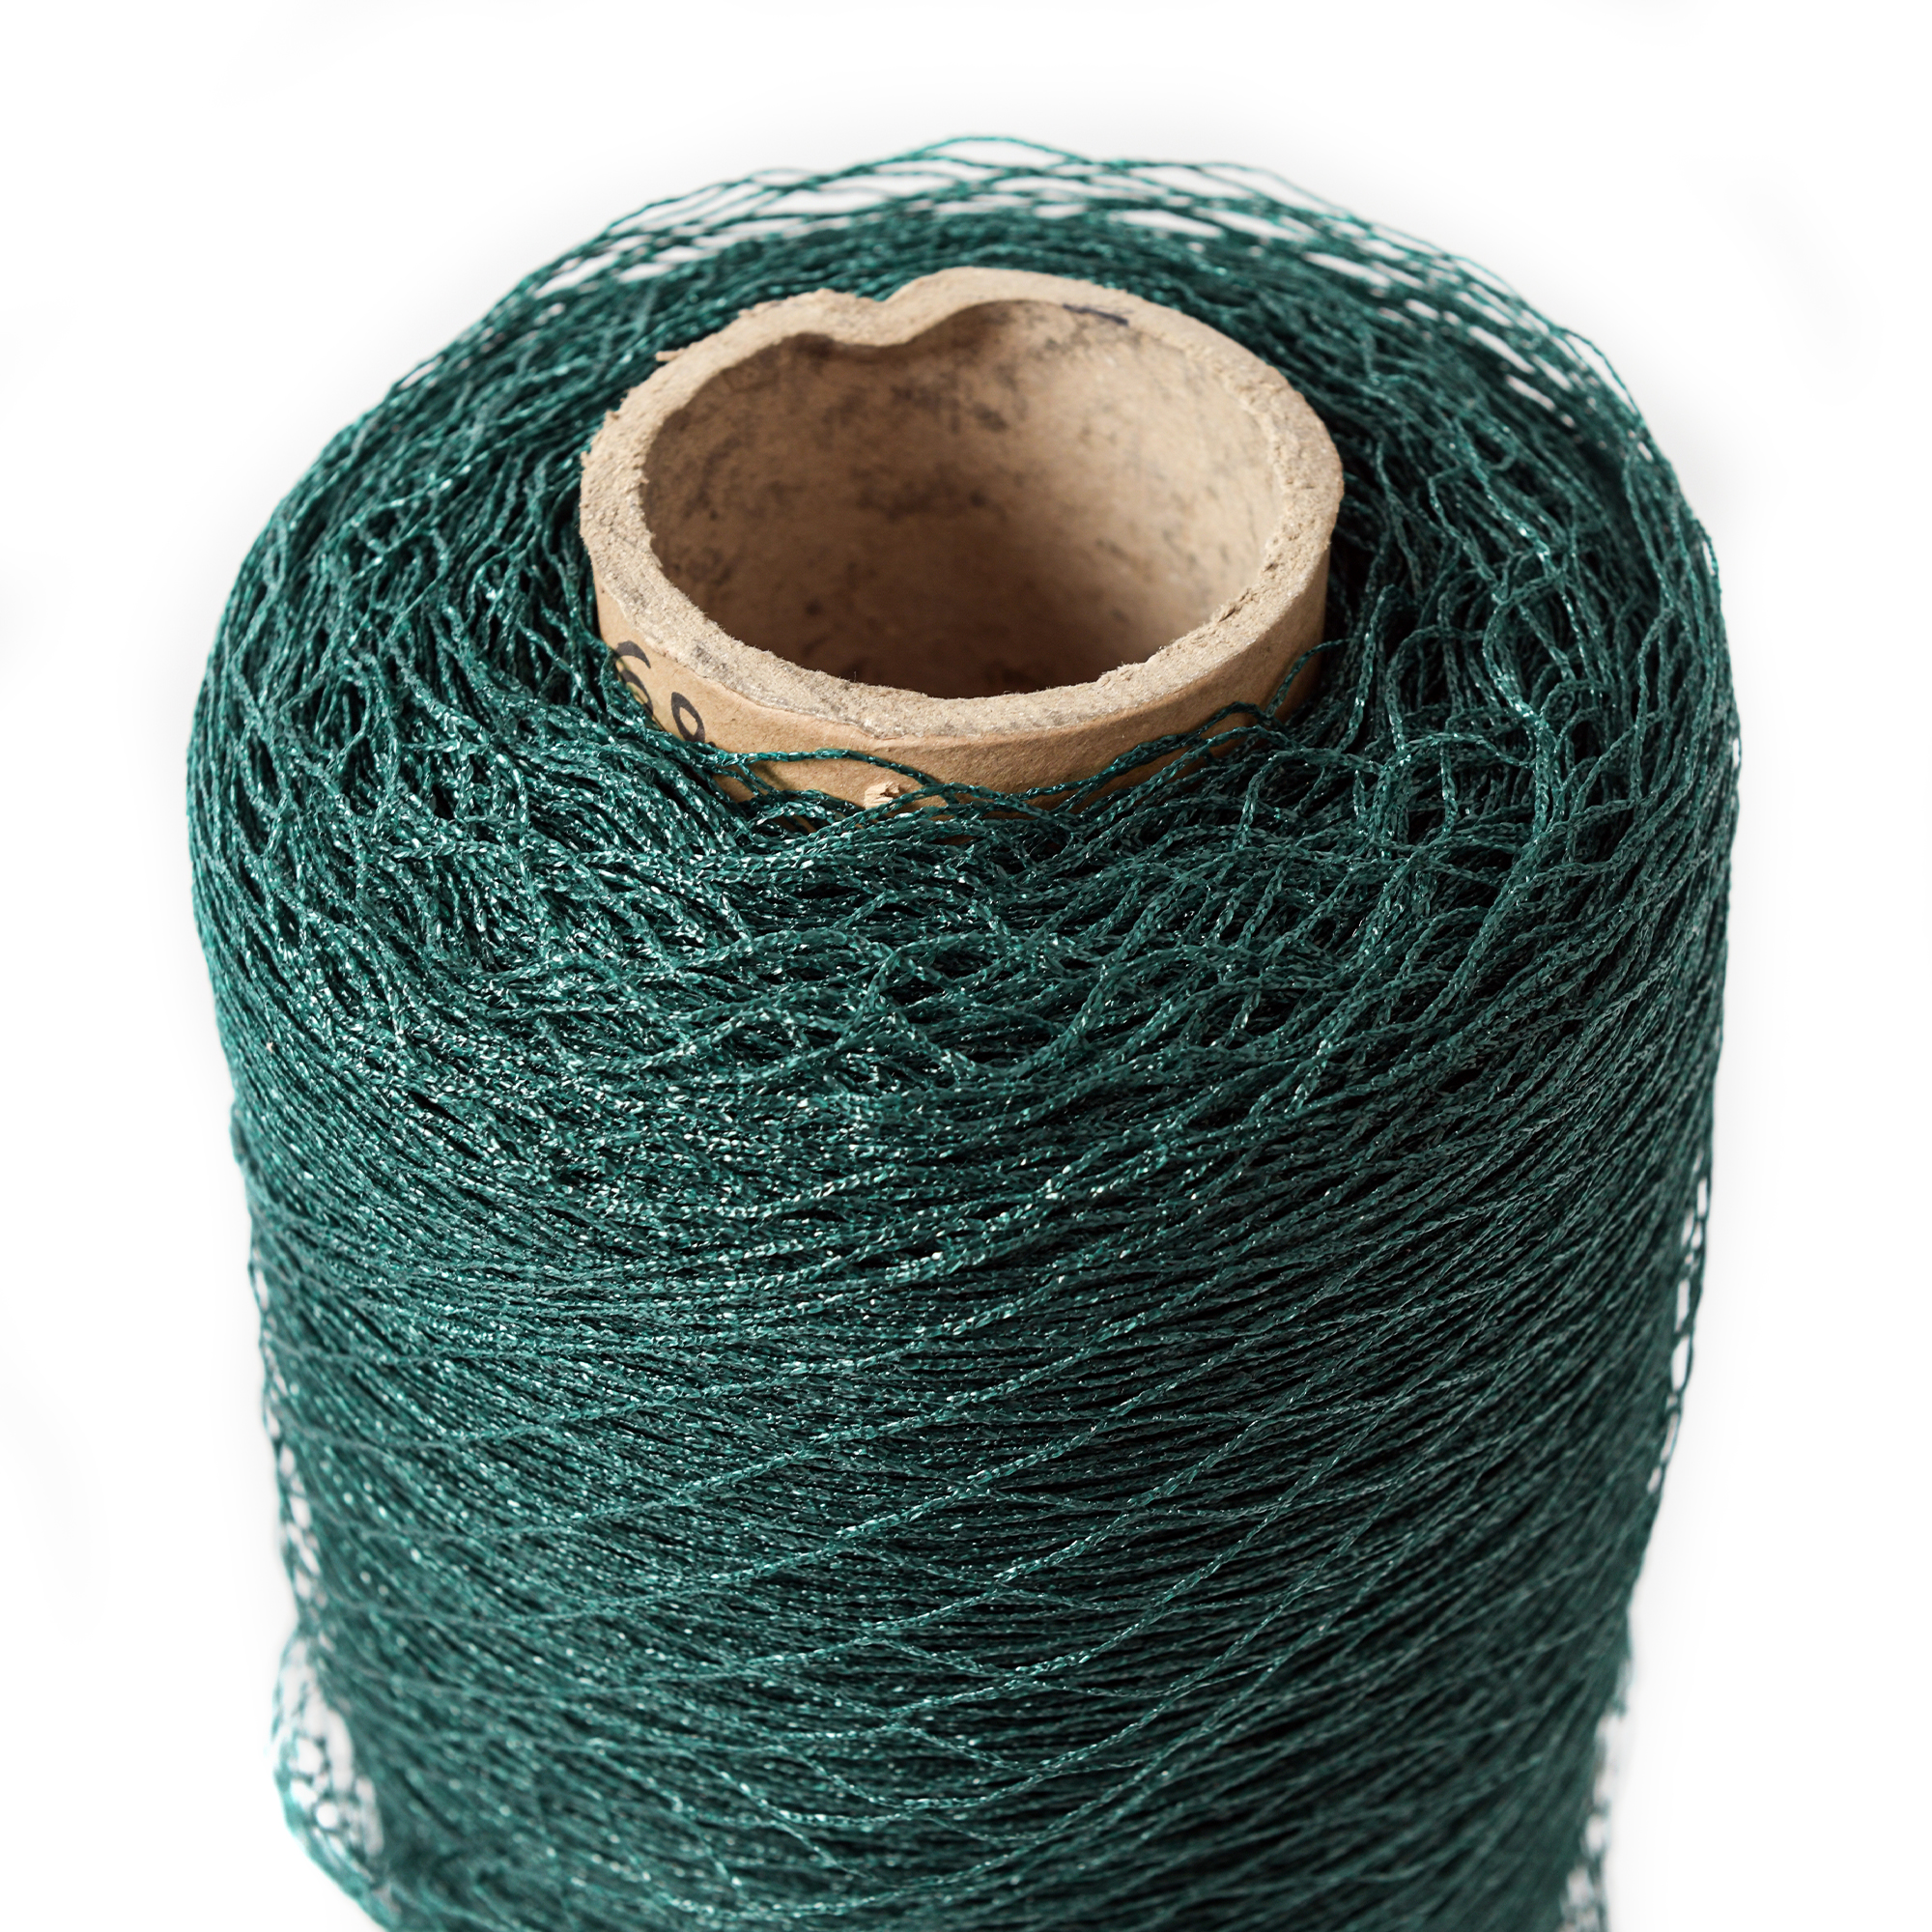 top-of-green-bird-netting-roll